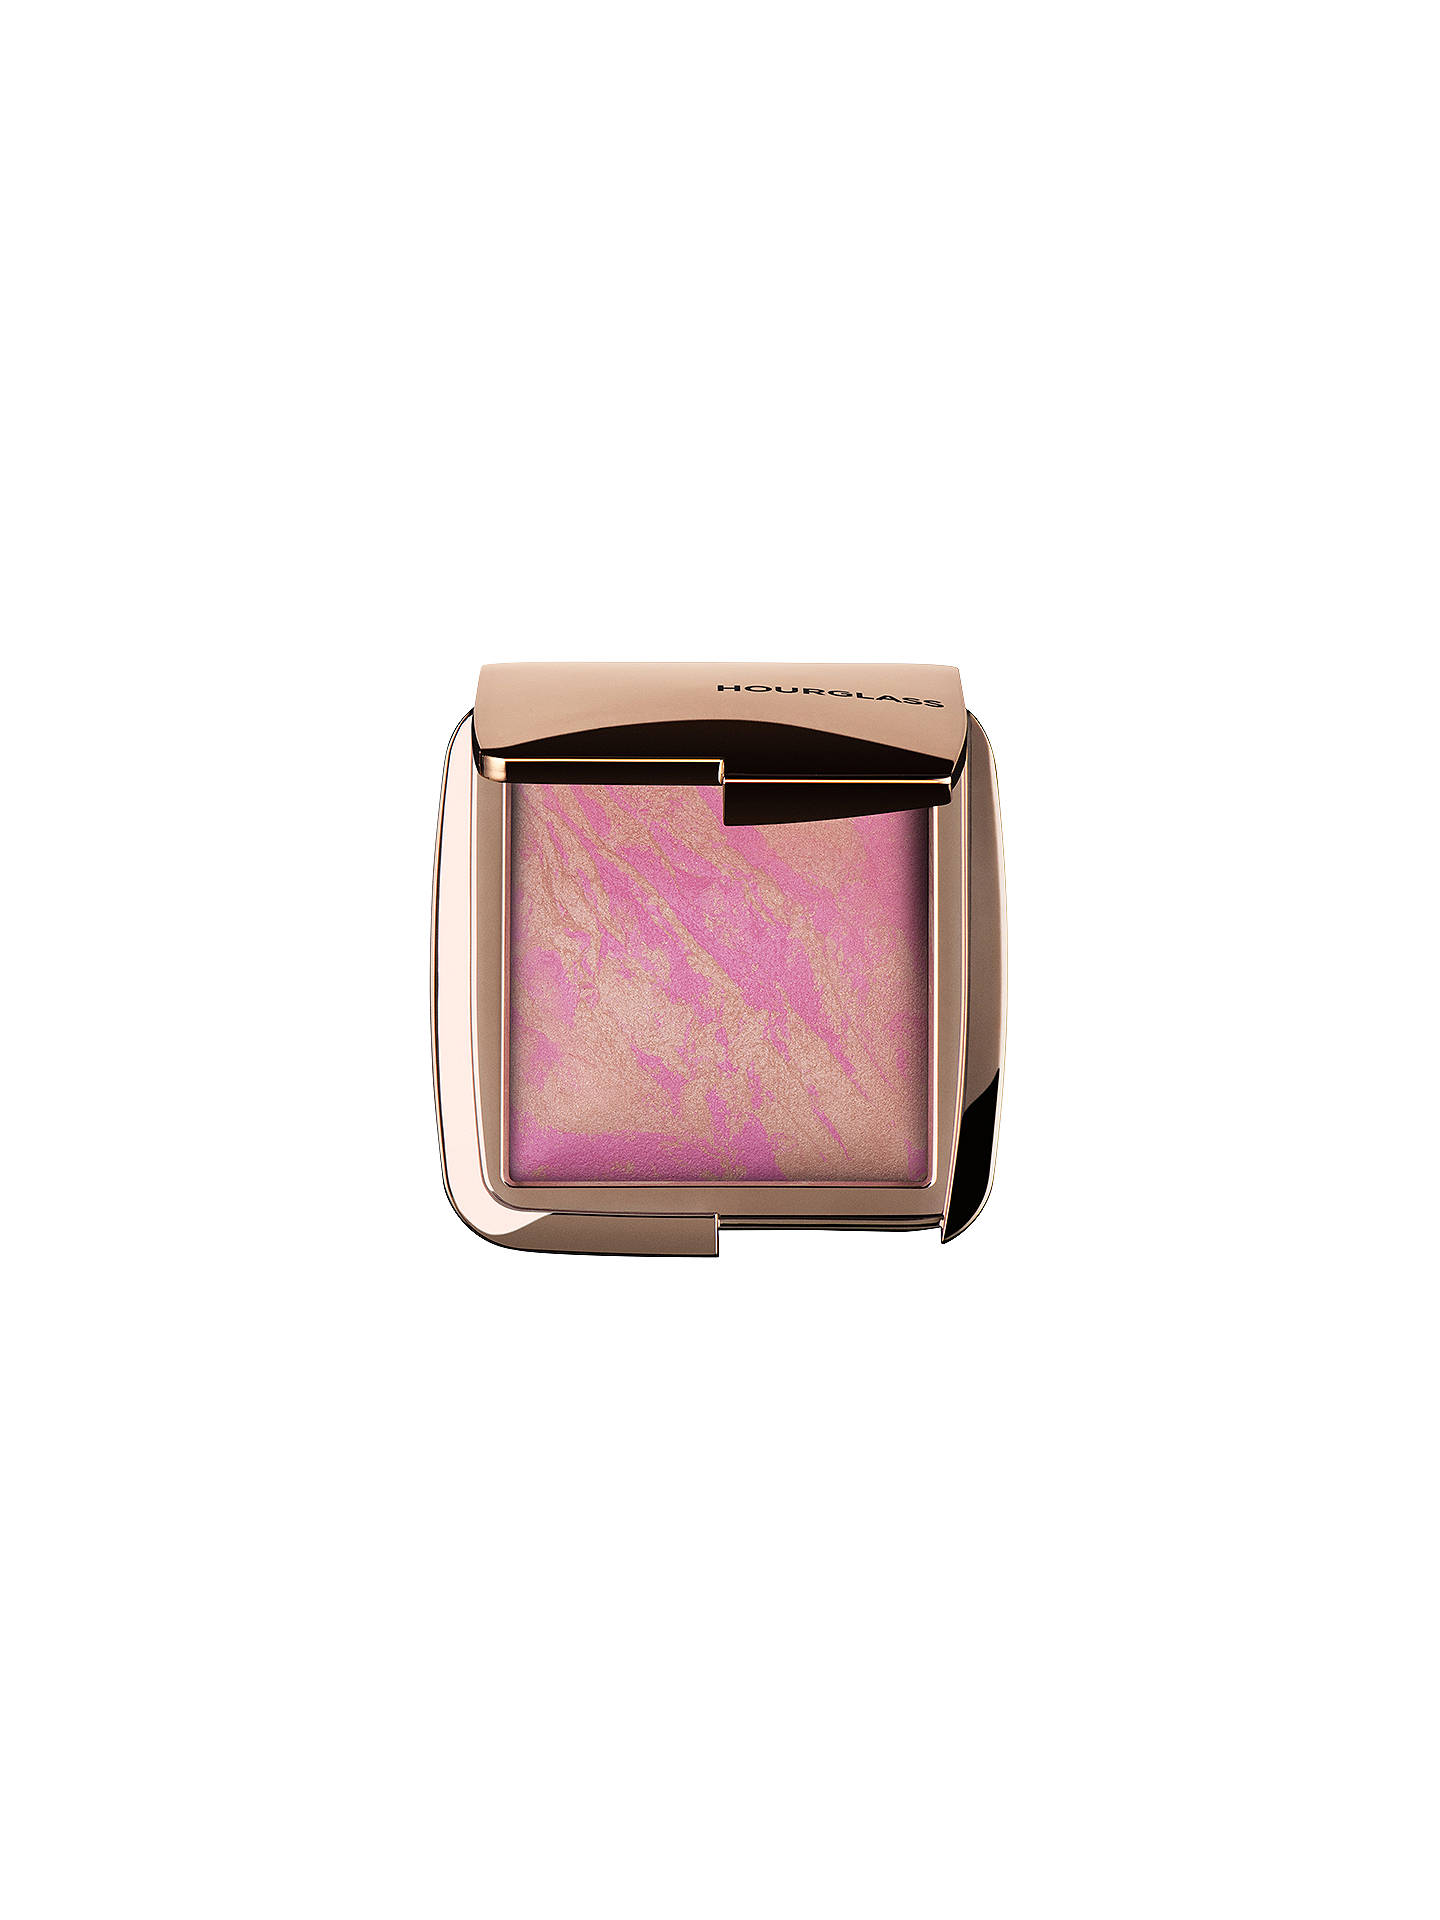 BuyHourglass Ambient Lighting Blush, Radiant Magenta Online at johnlewis.com